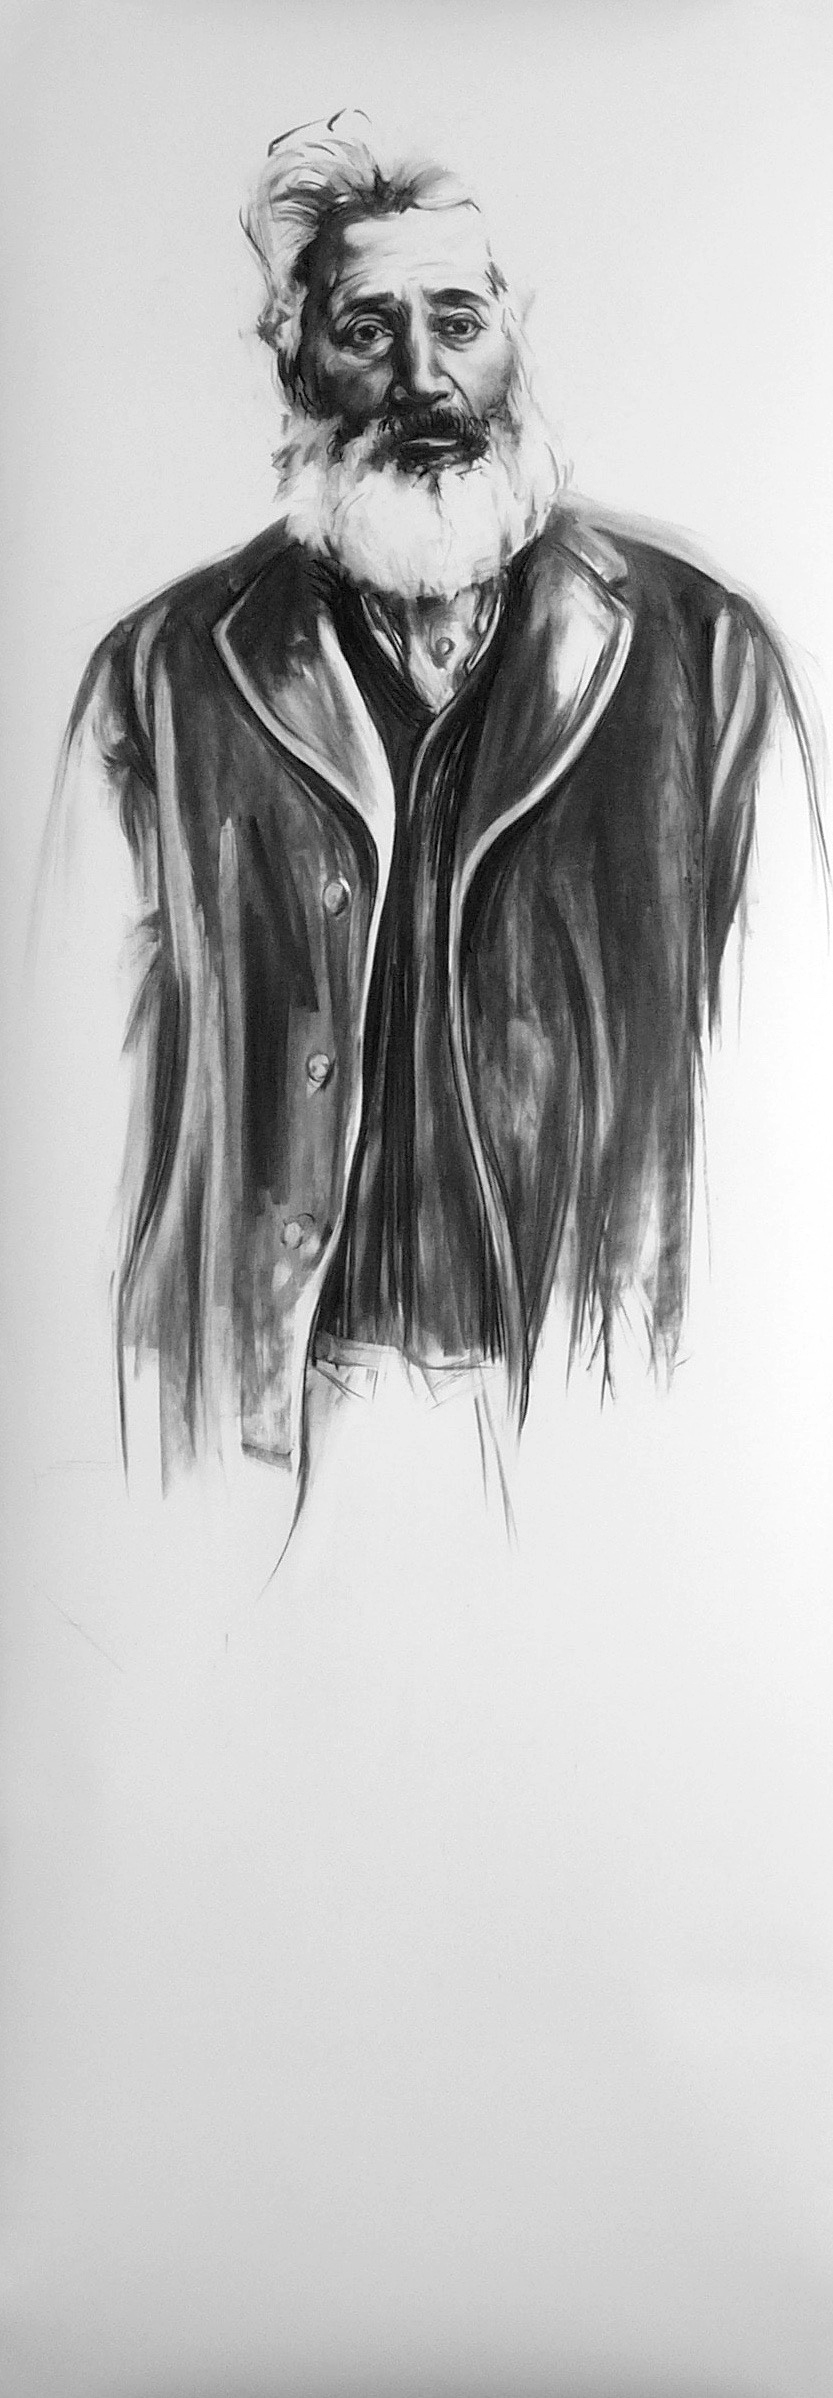 austin tann, 2005  Vine charcoal on paper  87 x 30 inches